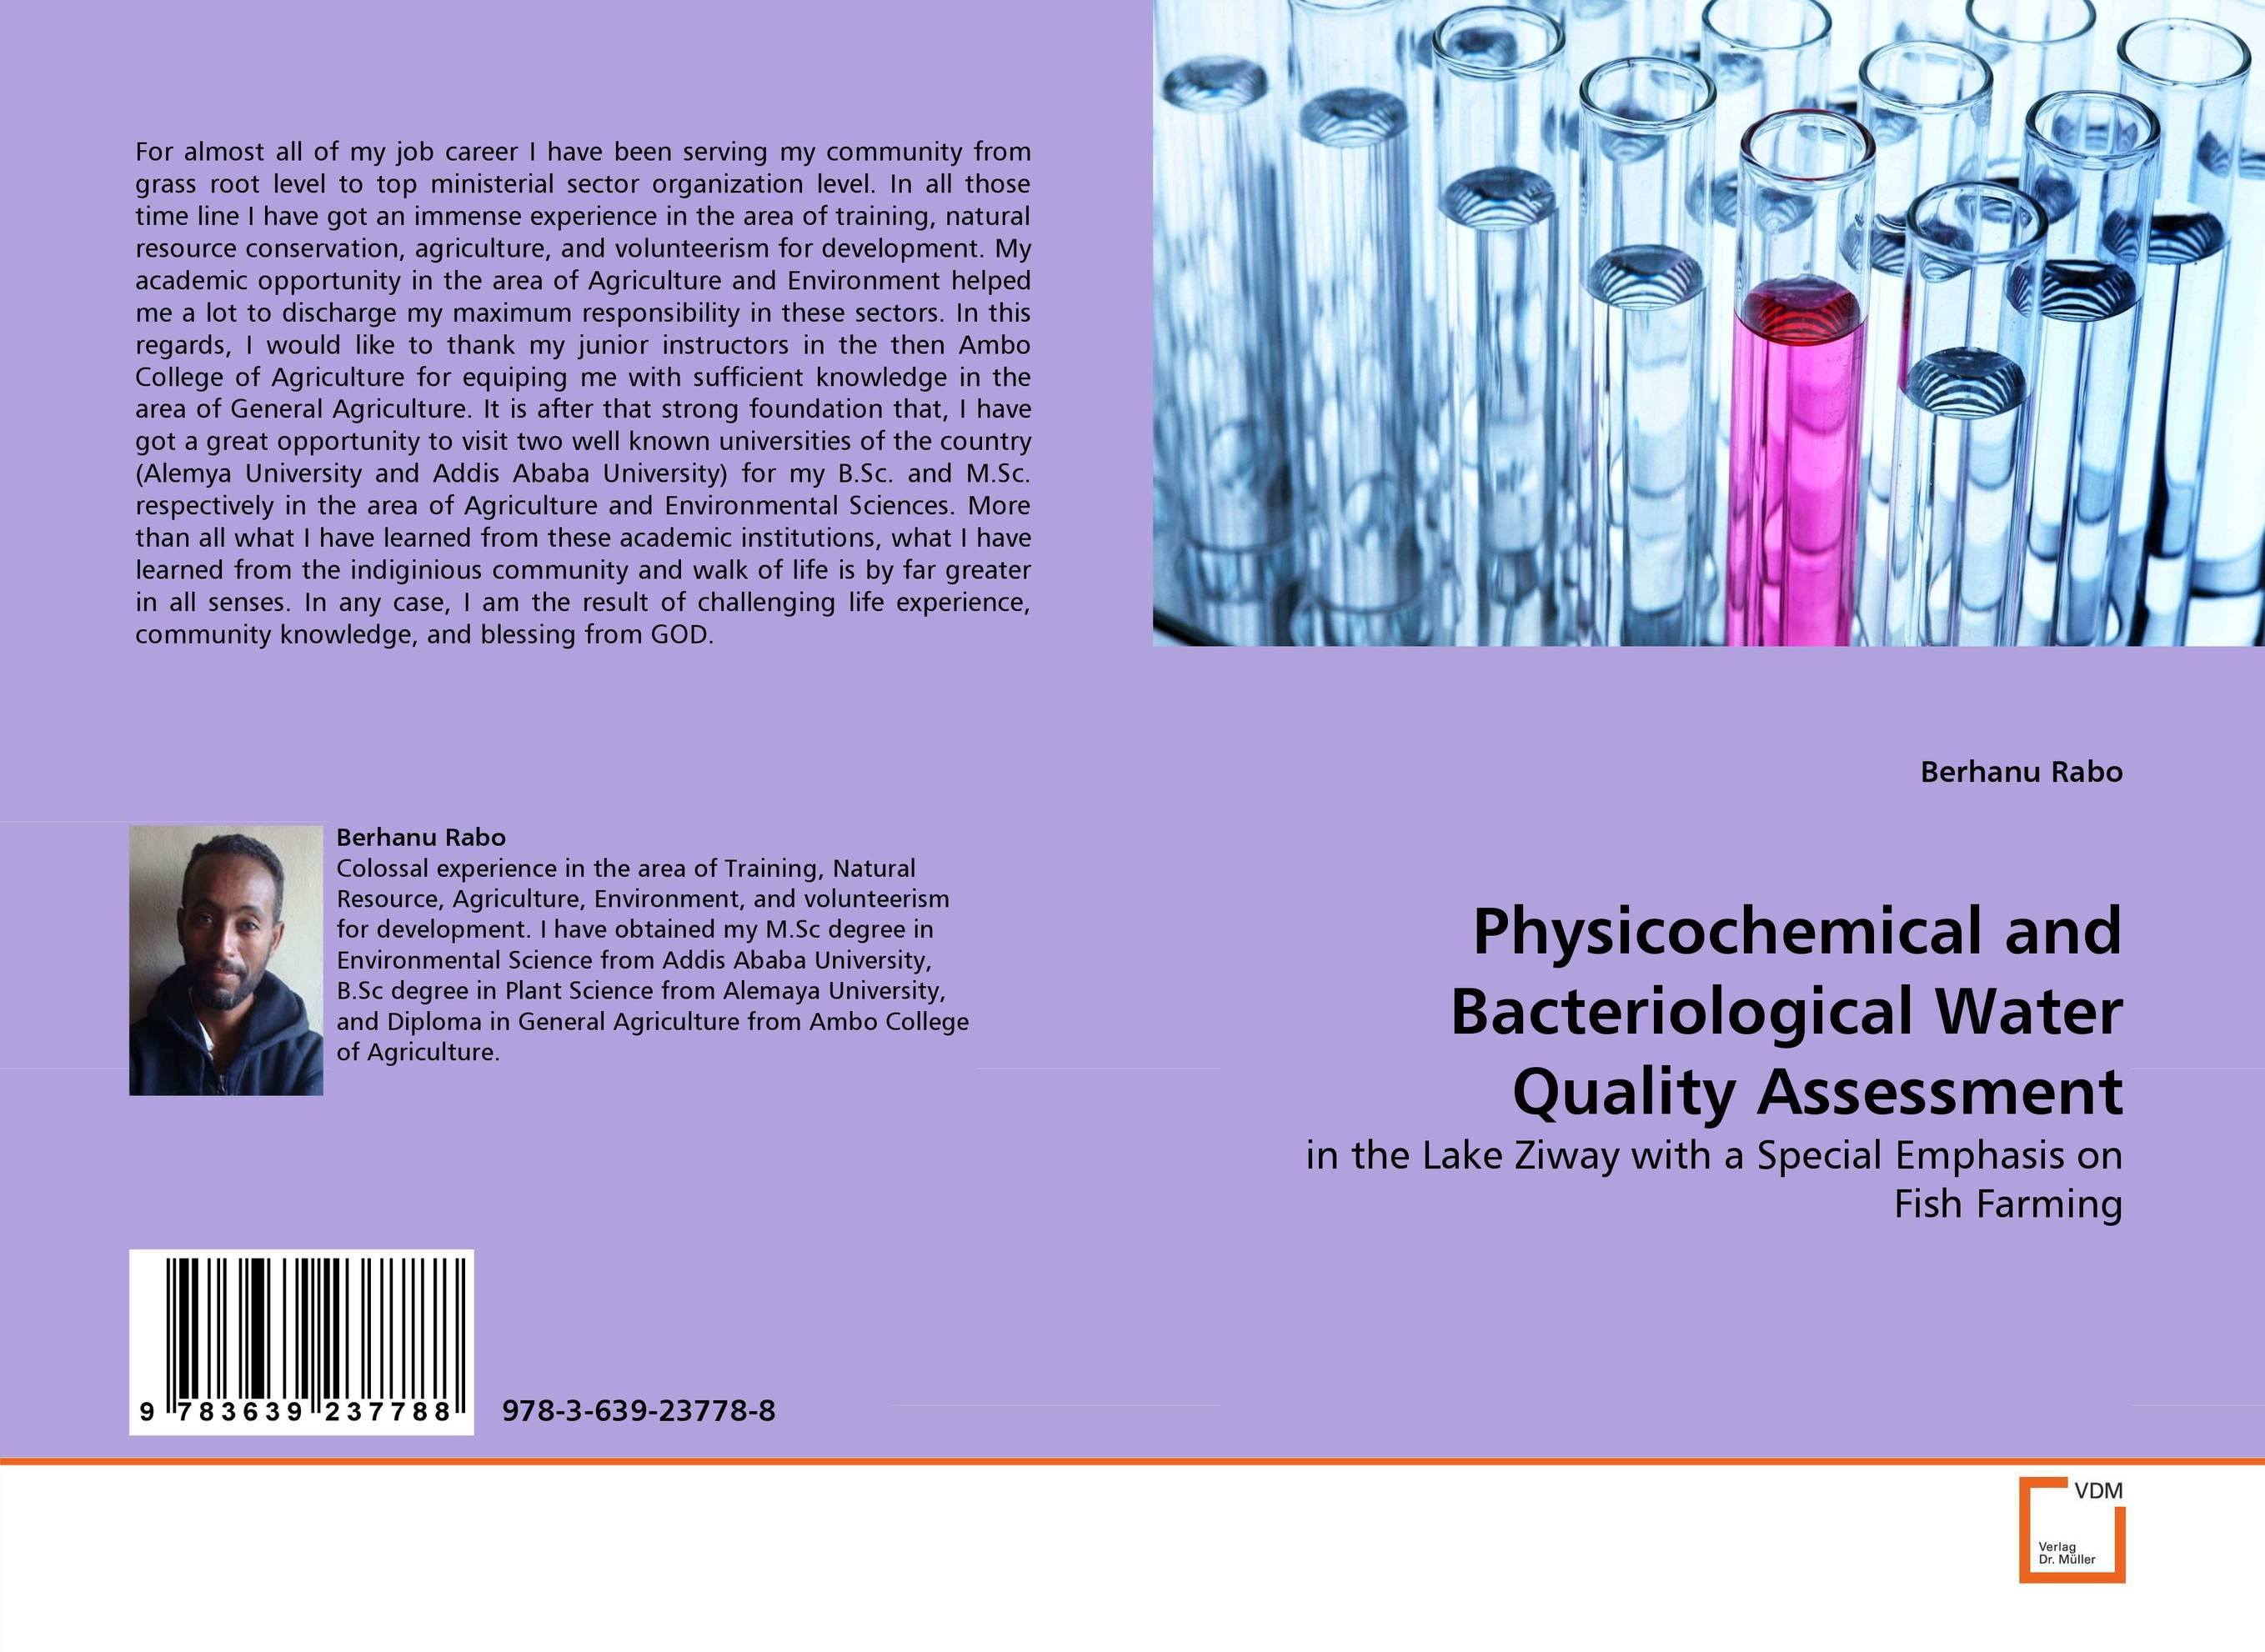 Physicochemical and Bacteriological Water Quality Assessment купить